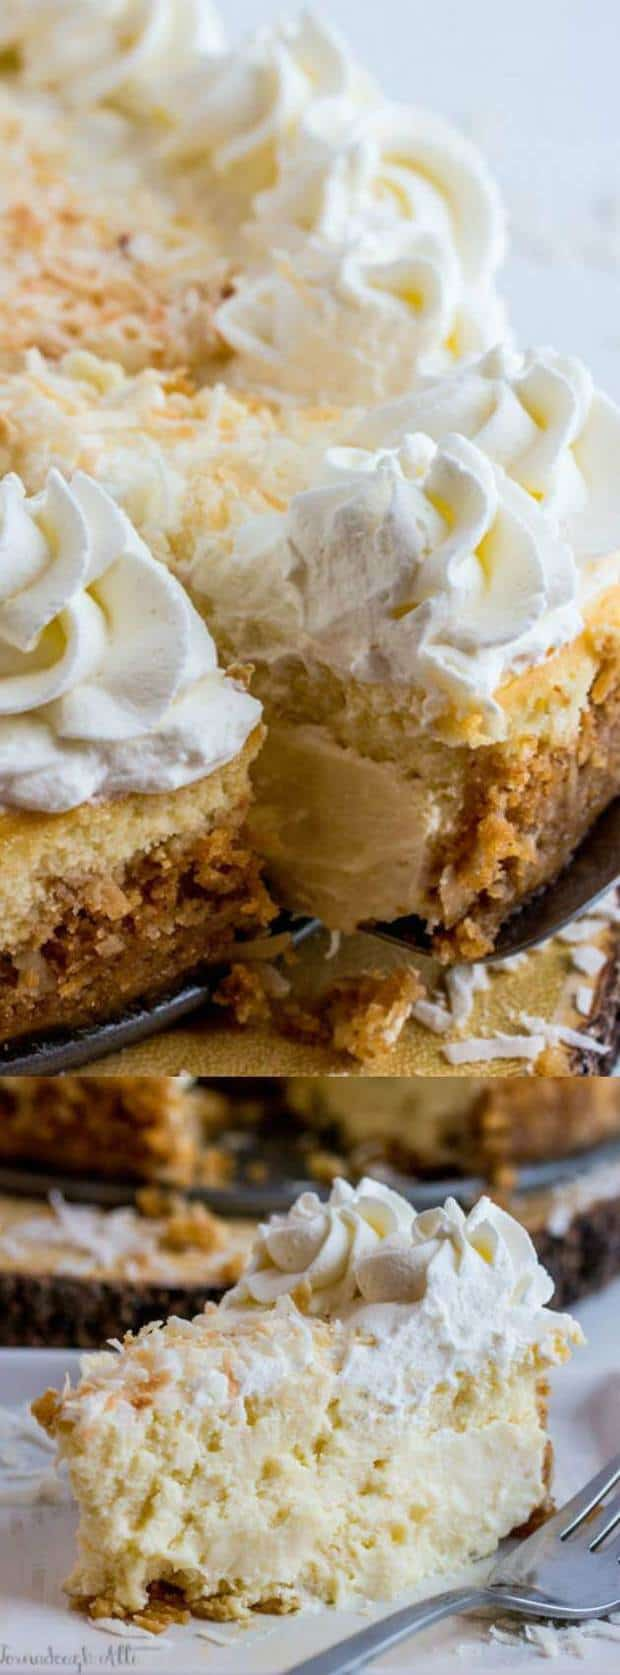 Coconut Cream Cheesecake Longpin